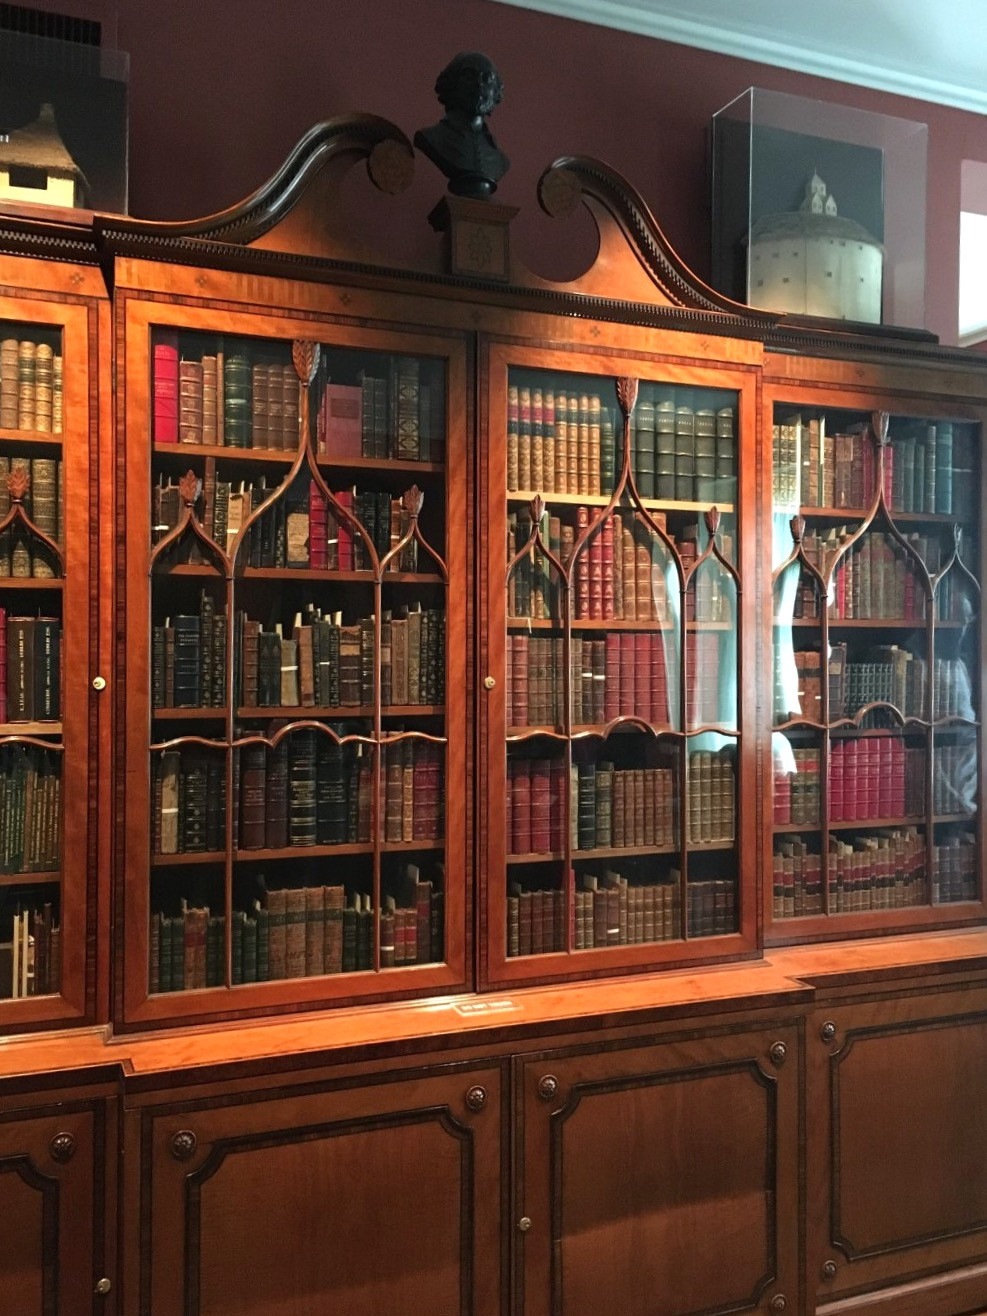 books in the Rosenbach Museum and Library